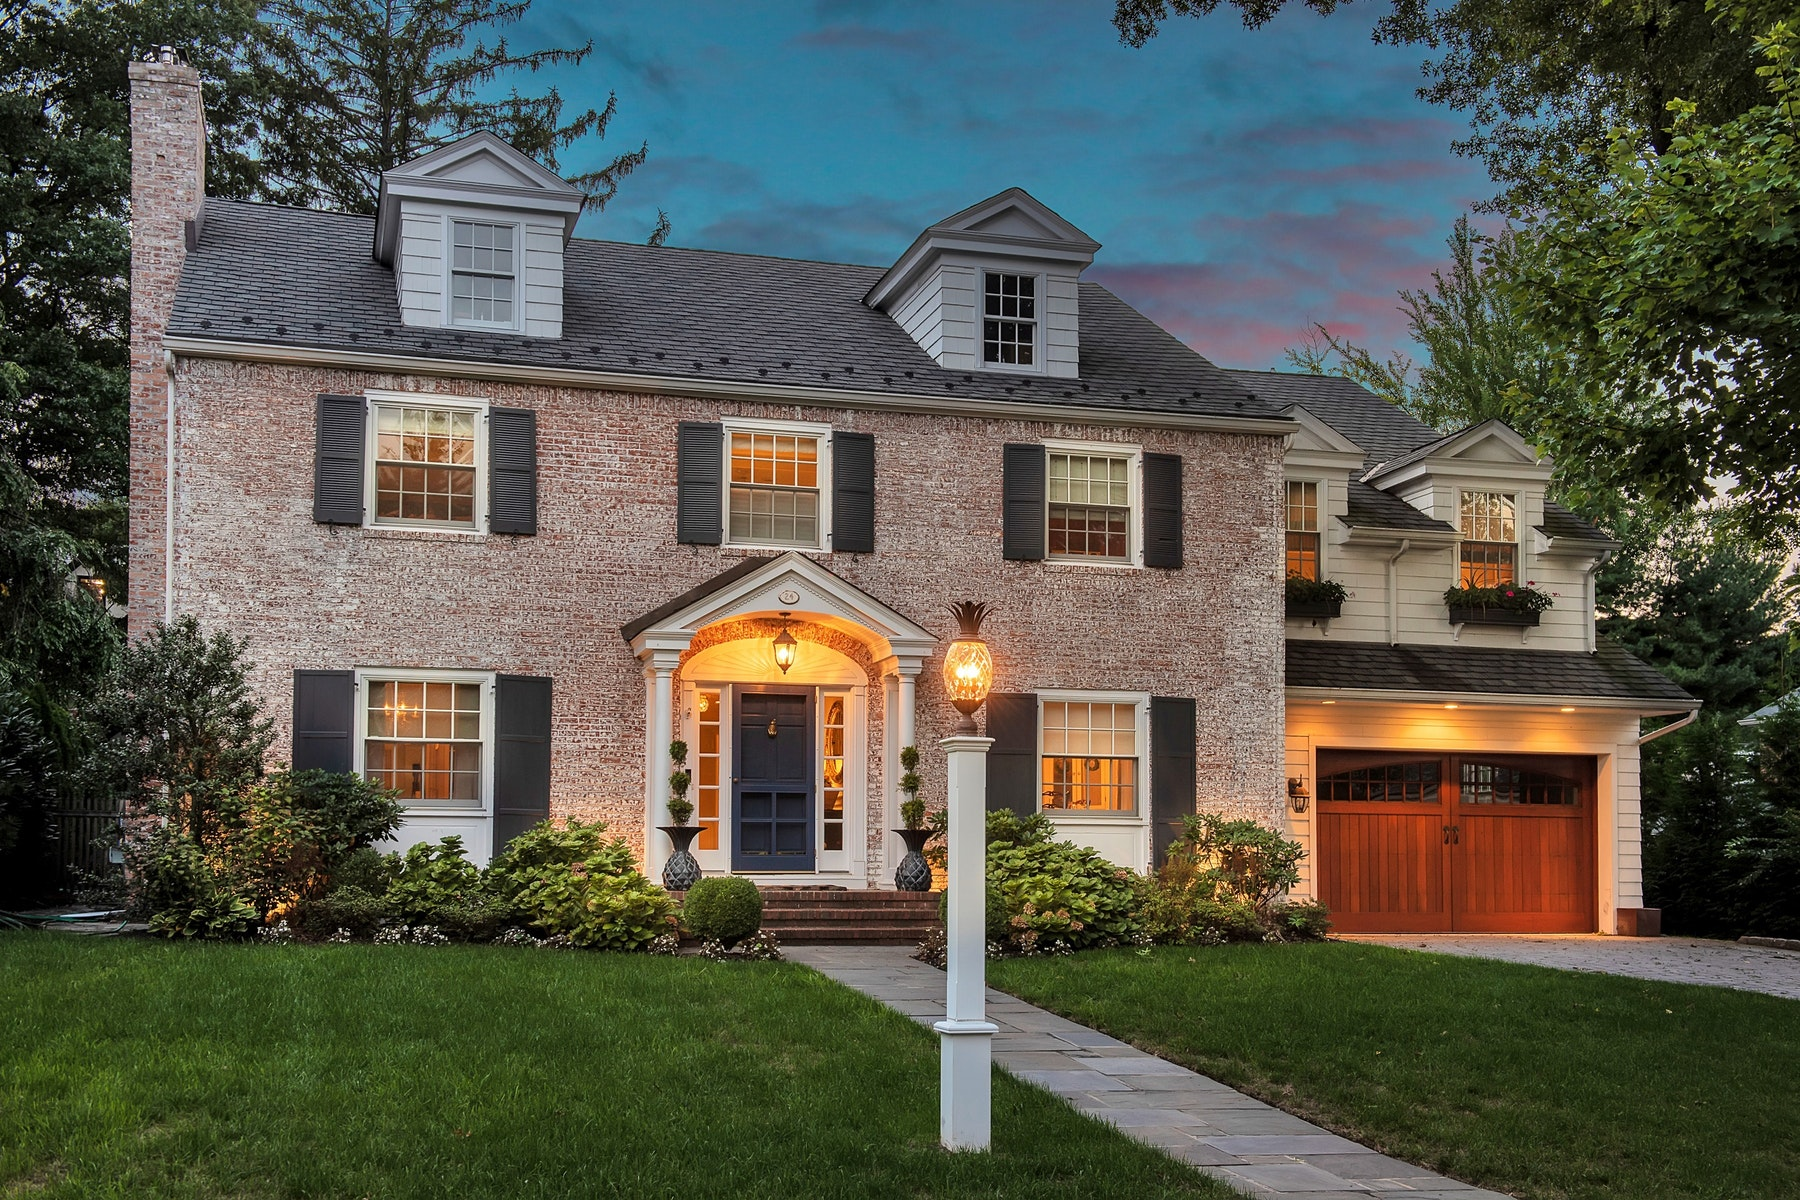 Single Family Homes for Sale at Imagine the Extraordinary! 24 Greenview Way Montclair, New Jersey 07043 United States